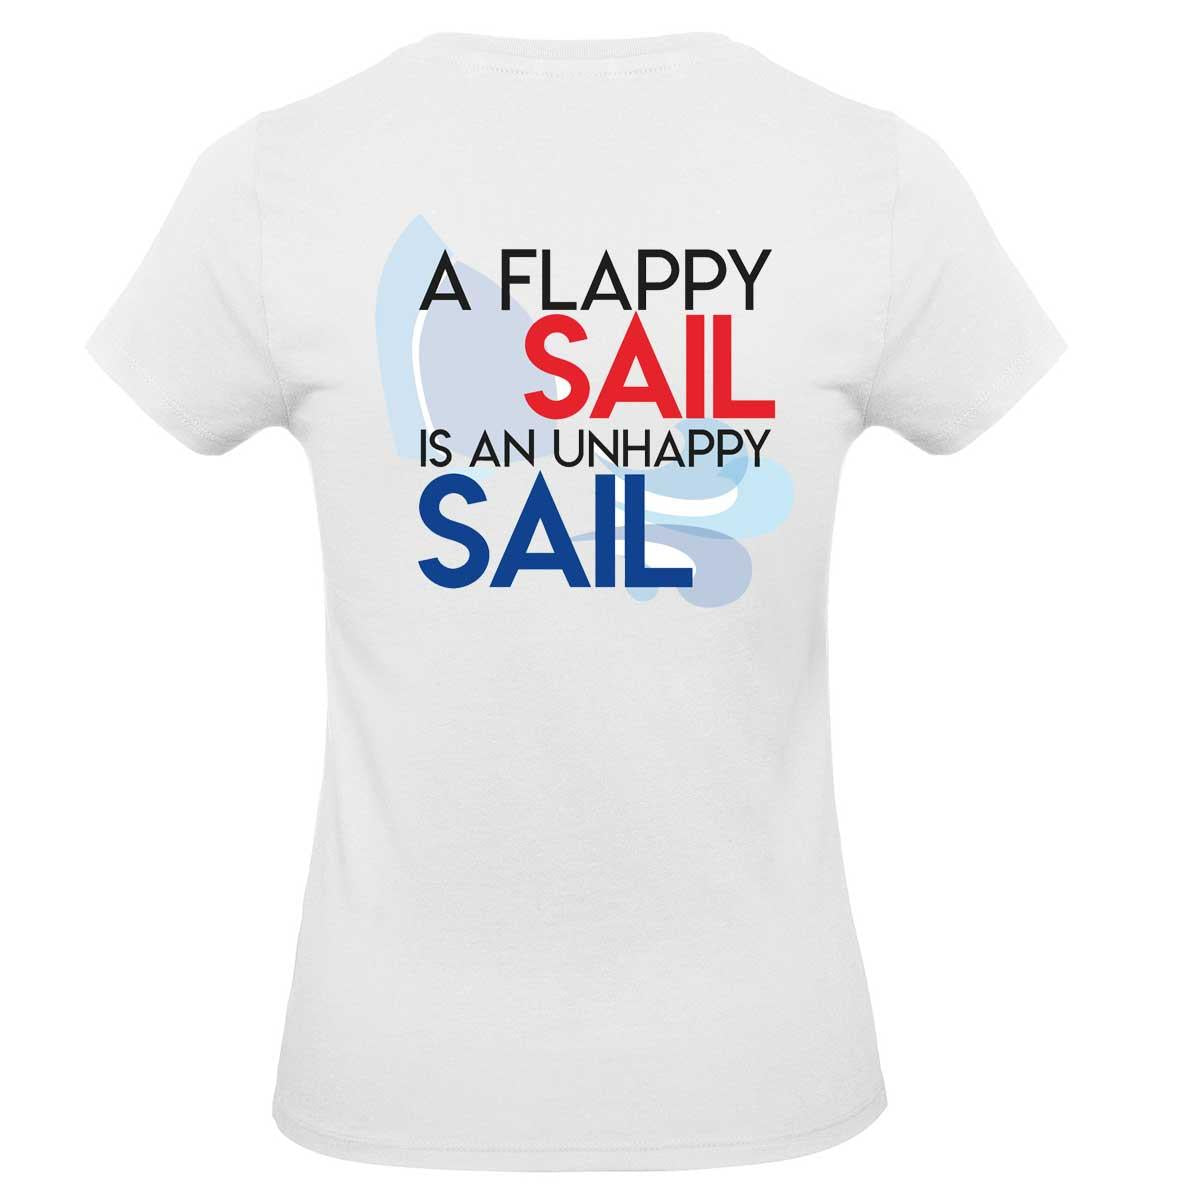 Womens T-Shirt - A Flappy Sail Is An Unhappy Sail